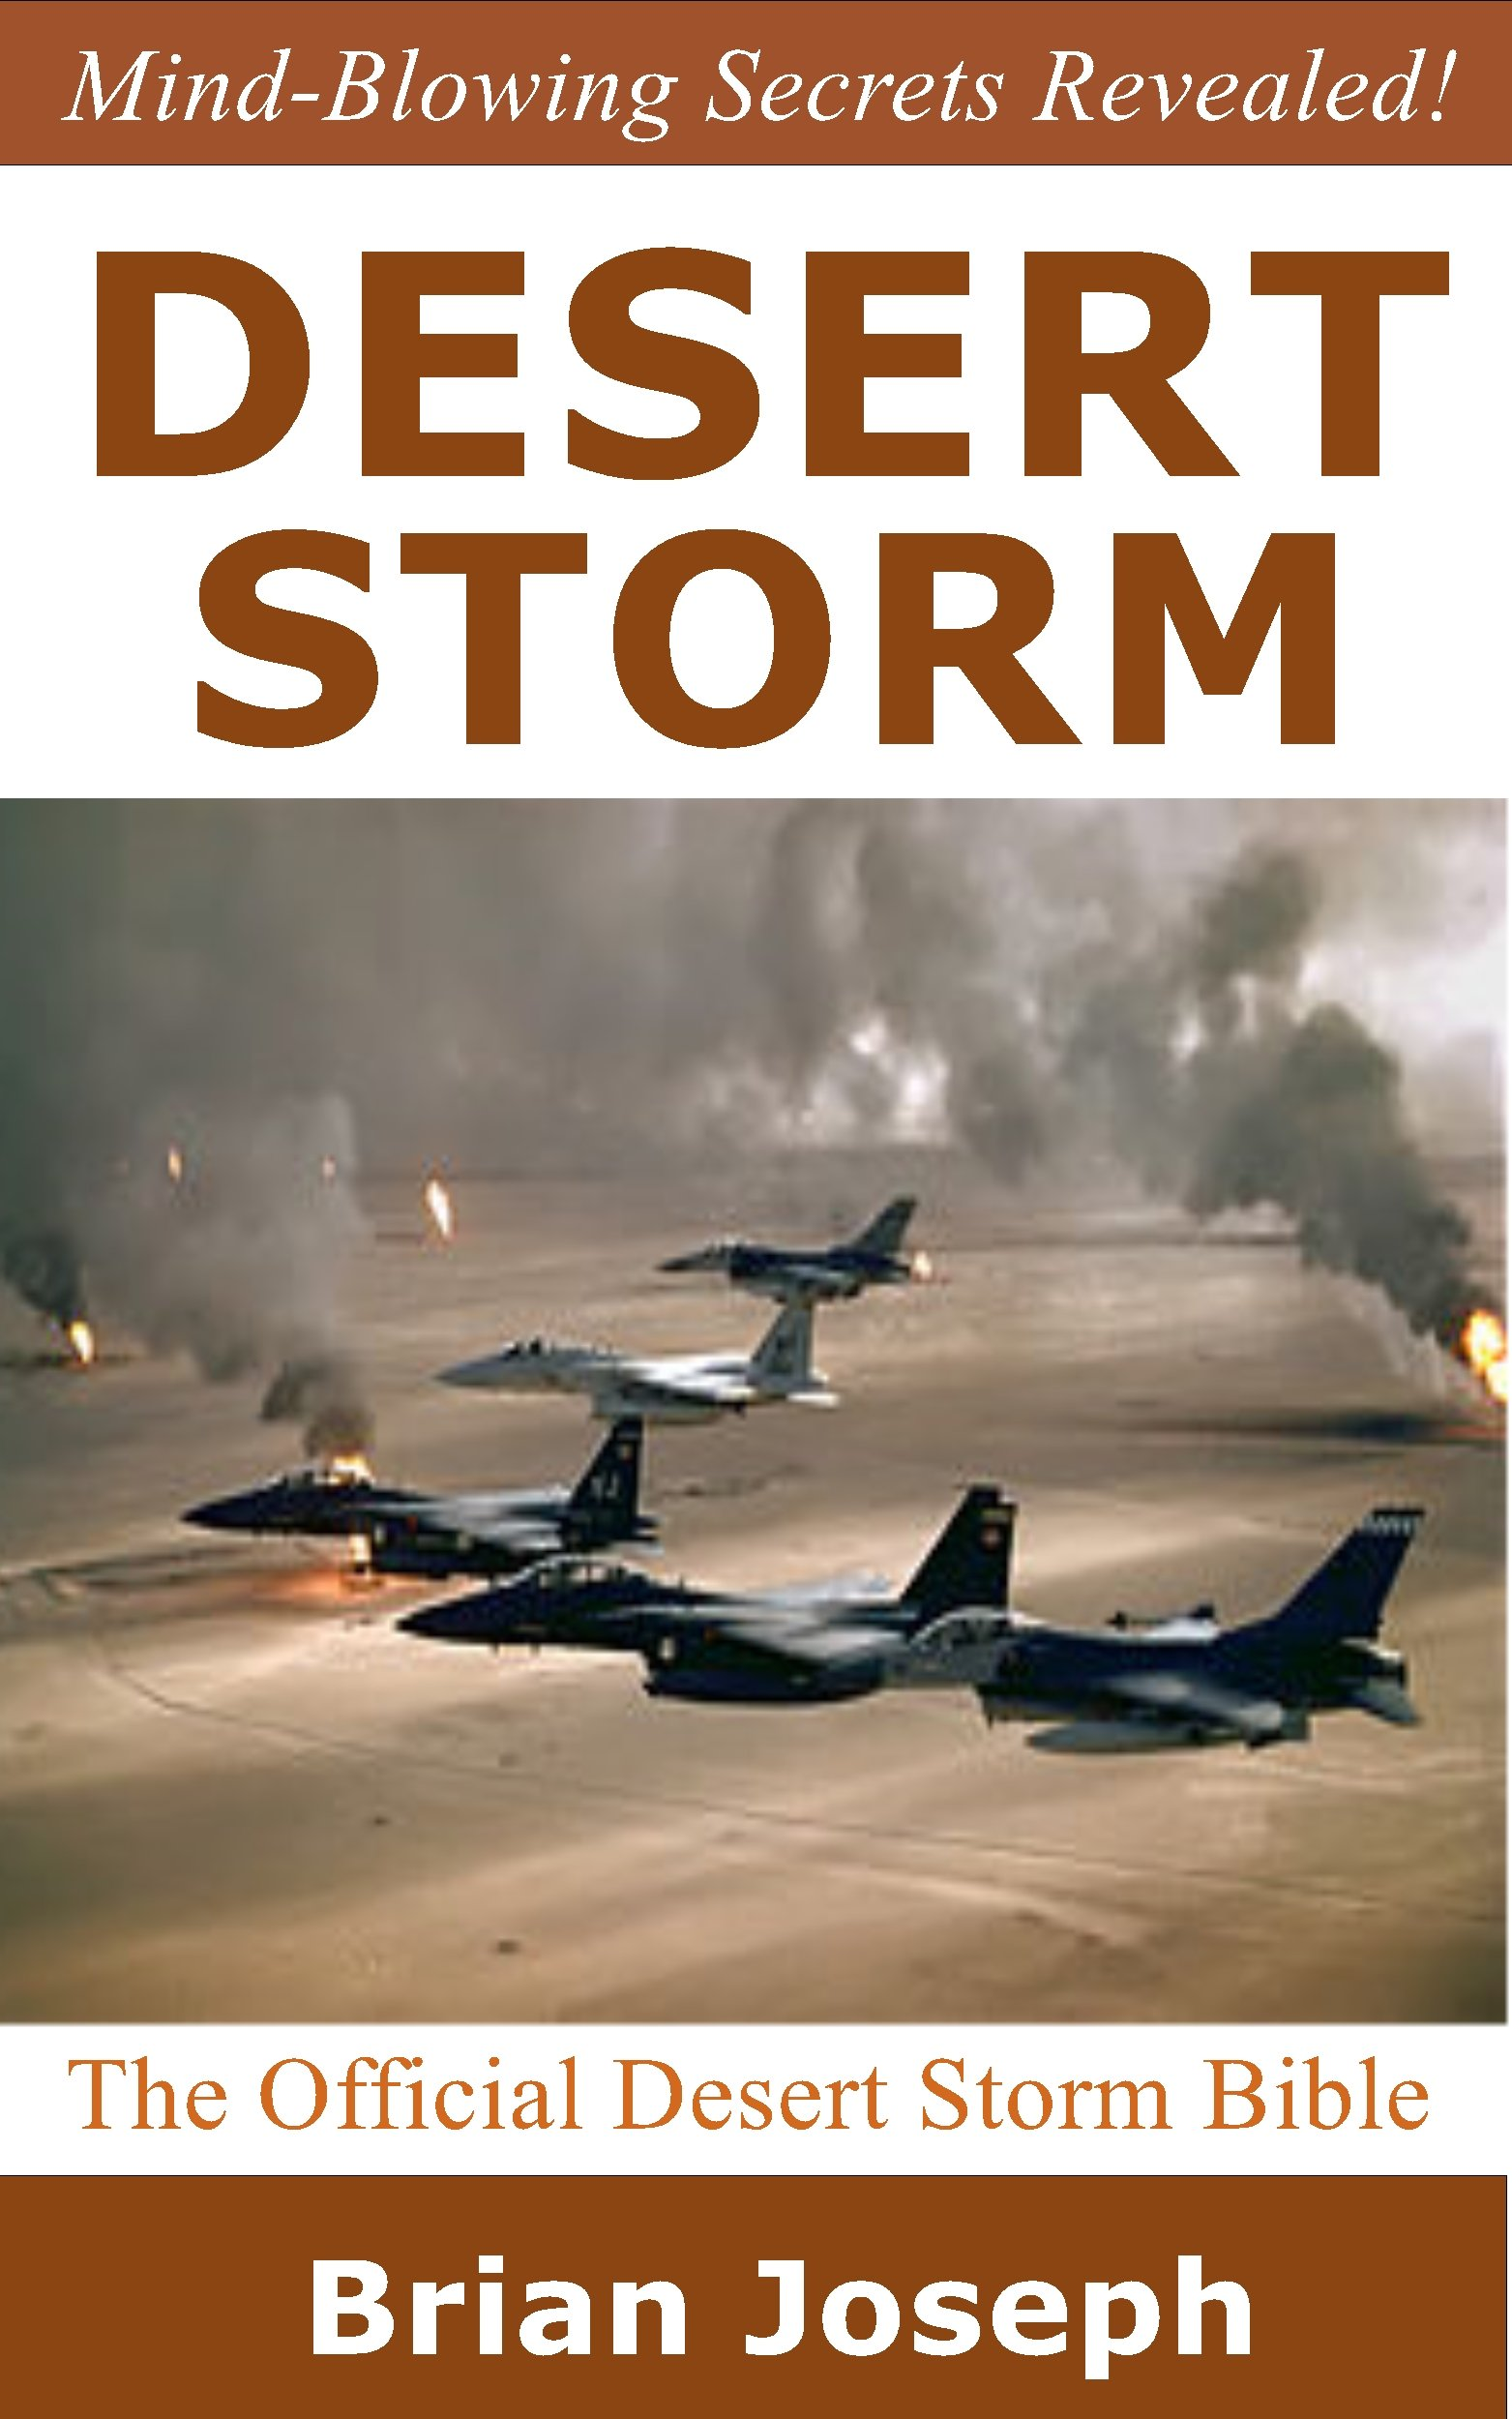 Desert Storm Desert Storm The Official